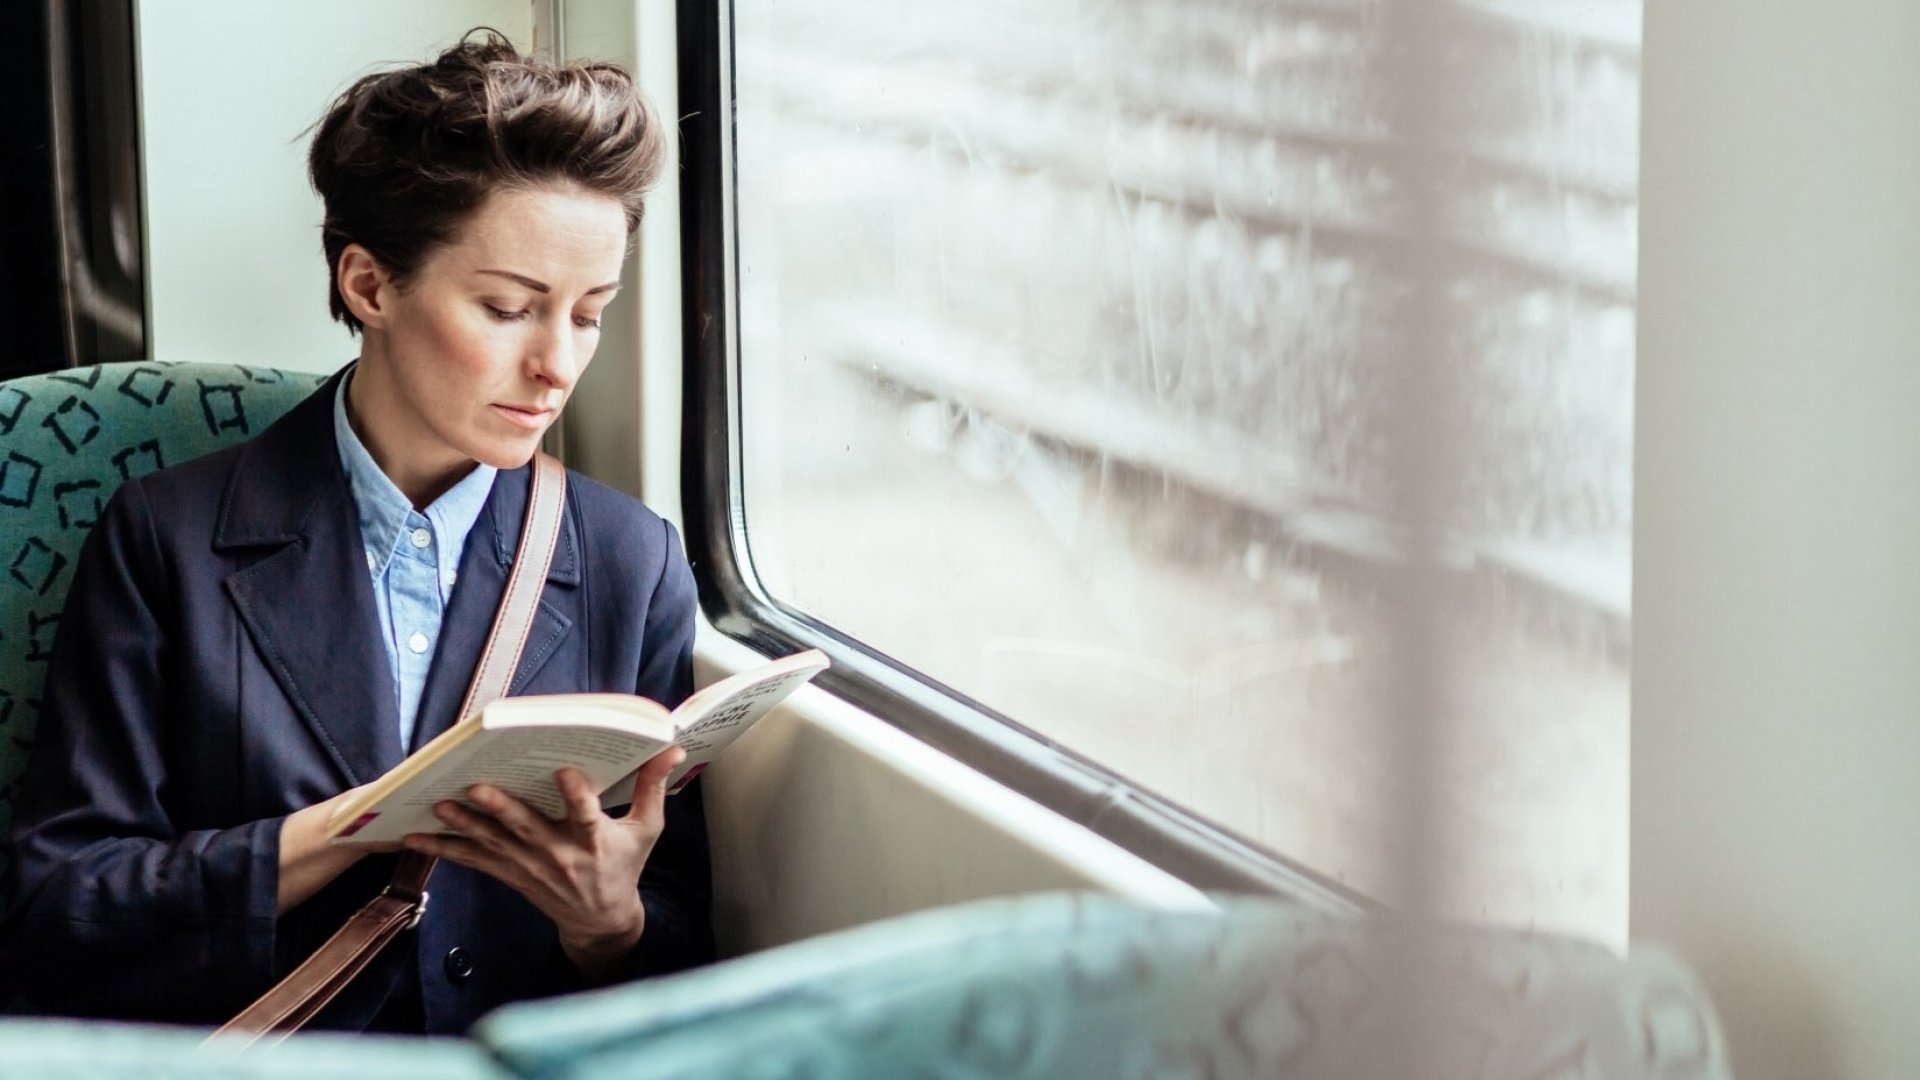 8 Books That Will Make Your Commute a Pleasure